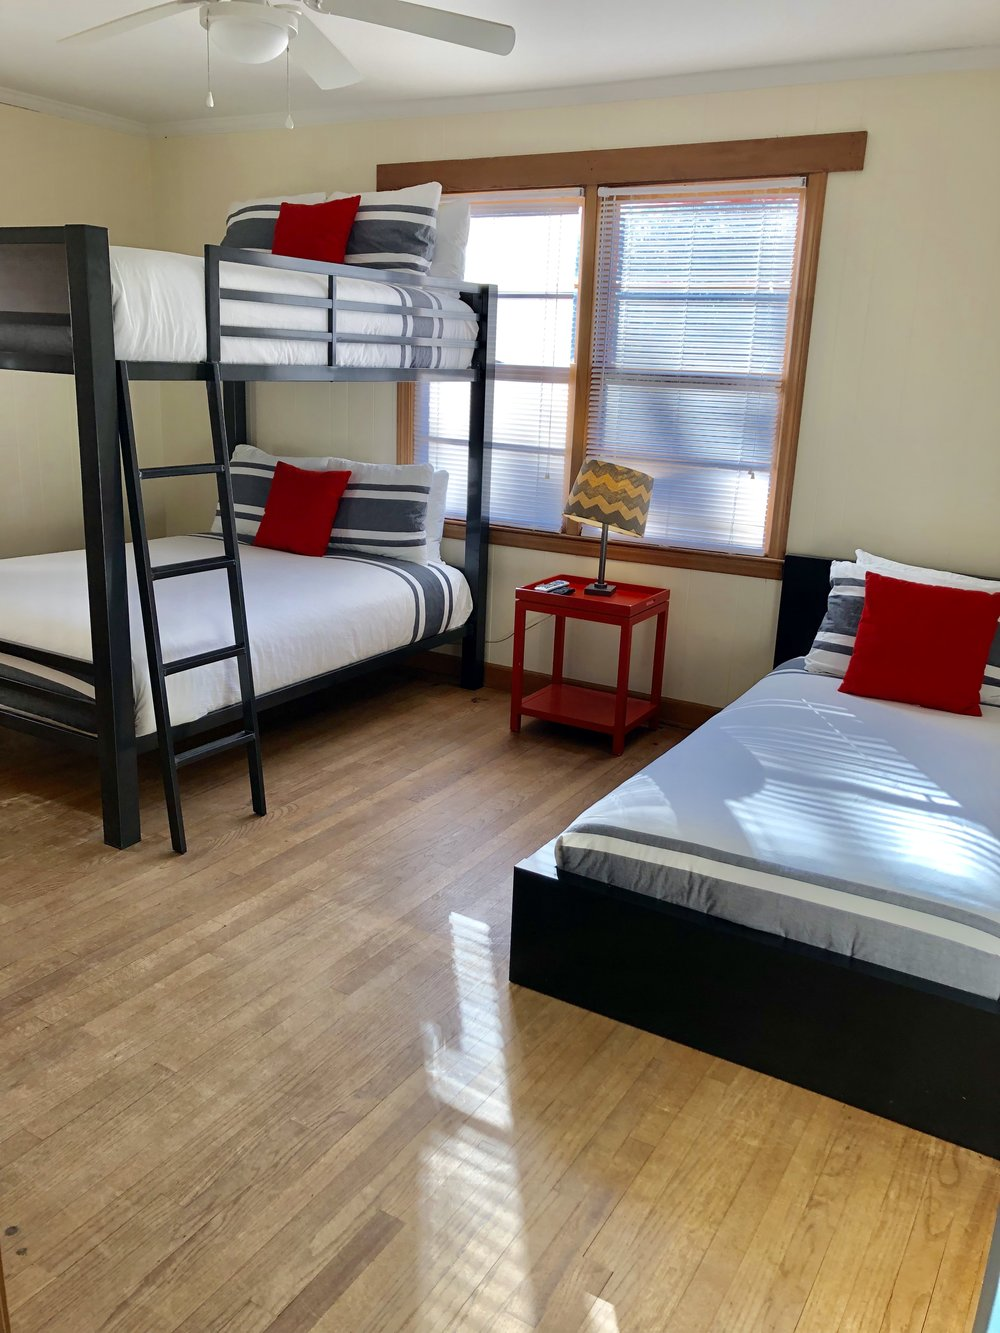 Elroy Room - The Elroy Room has a bunk bed with two full size mattresses and a twin bed, private bathroom with shower stall, TV, Kuerig and access to community kitchen, outdoor decks and hot tub. Sleeps 3-5. Starting at $80/night.